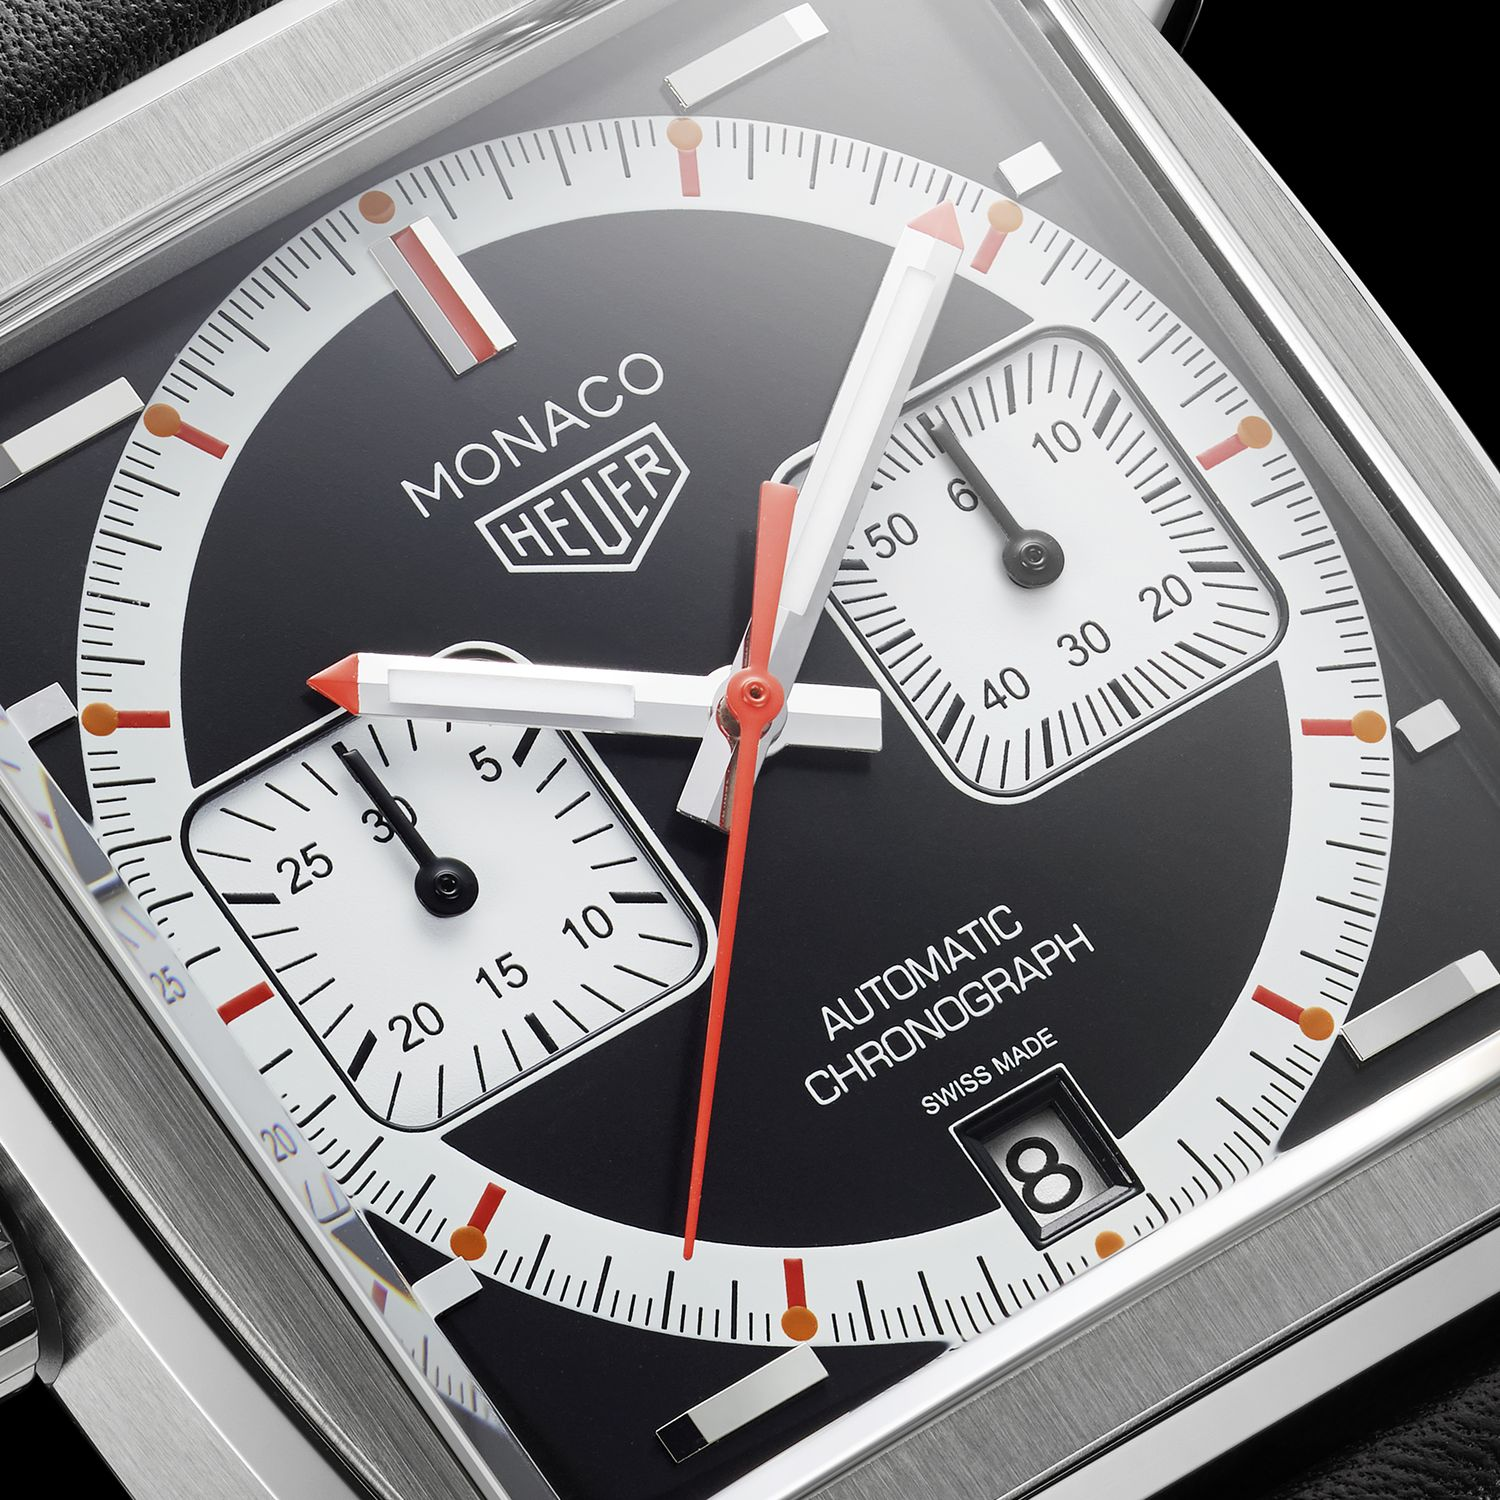 The '99-'09 LE Monaco sports a classic reverse-panda dial for superior legibility